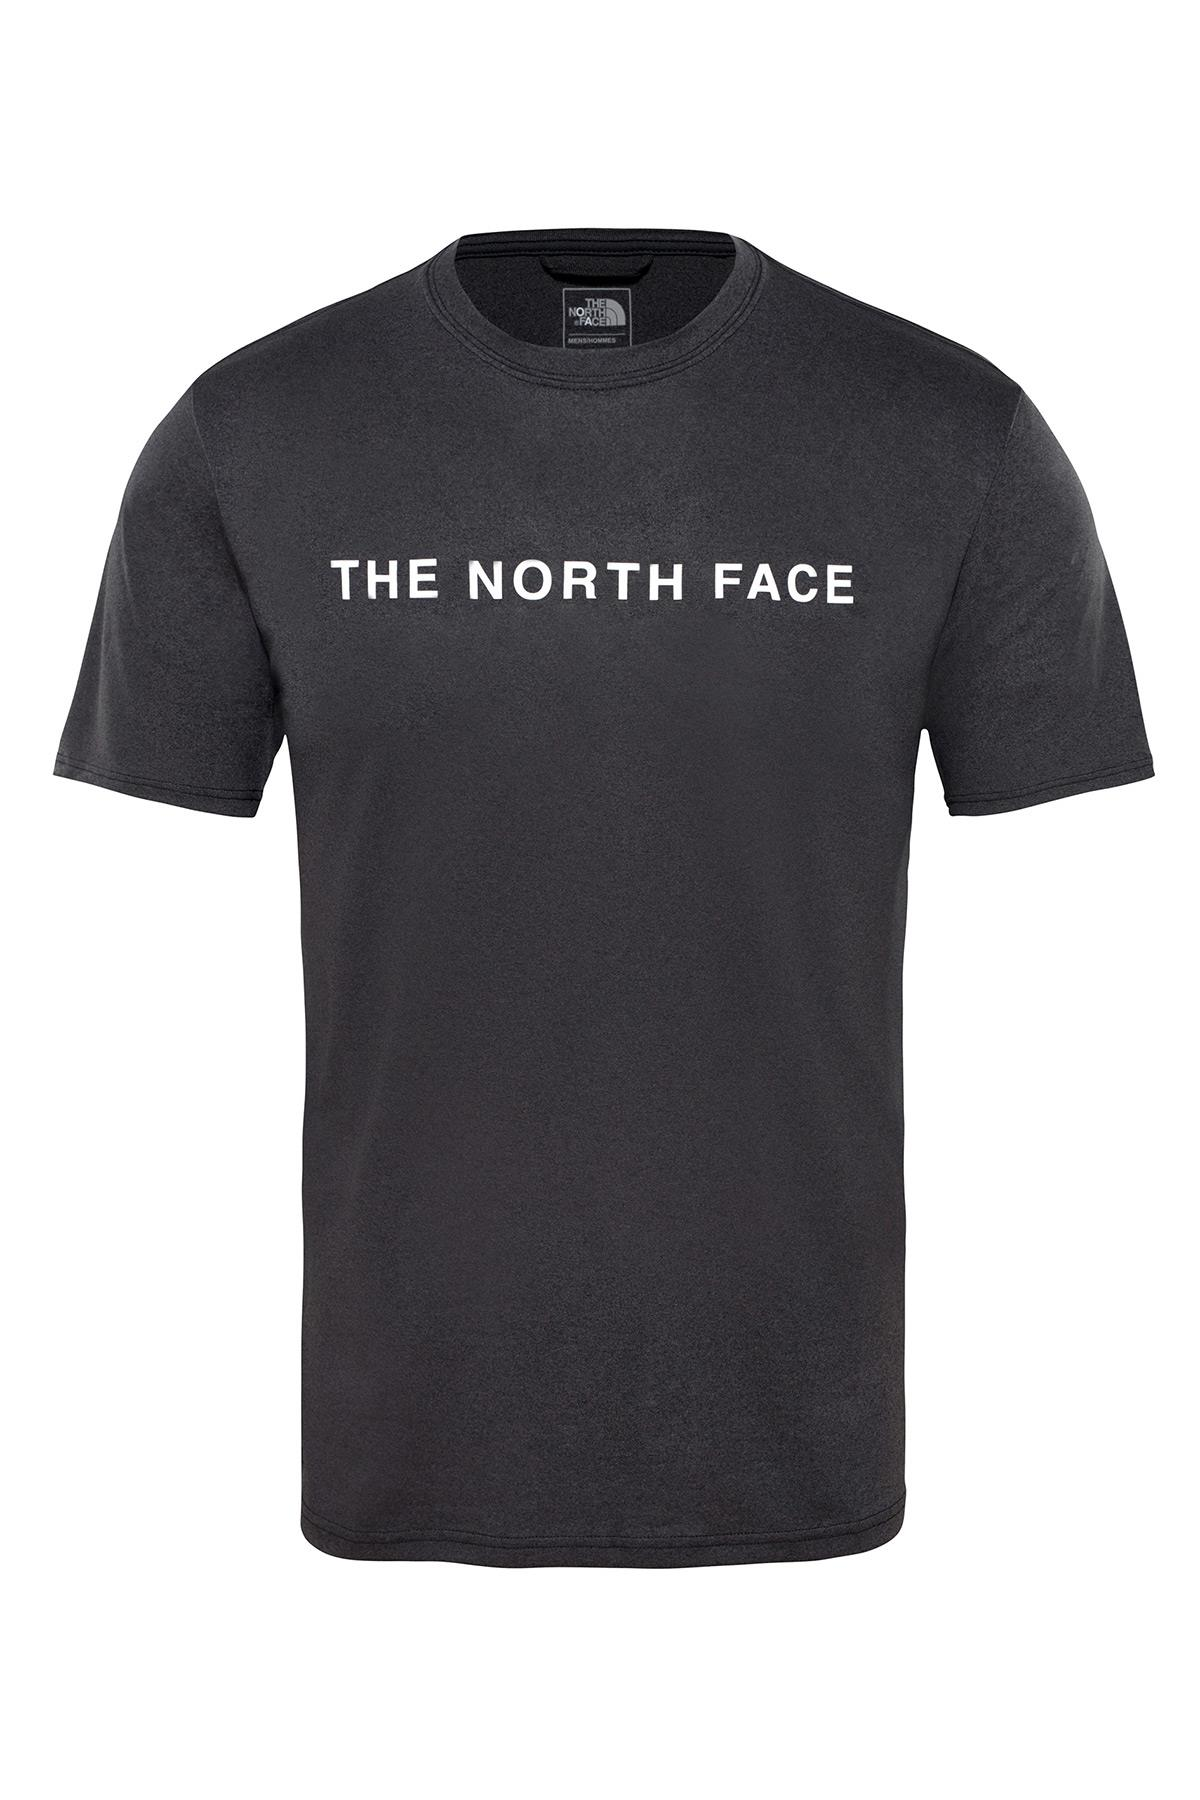 The Northface Erkek Train N Logo S/S Tee - Eu T93Uwvks7 Tişört